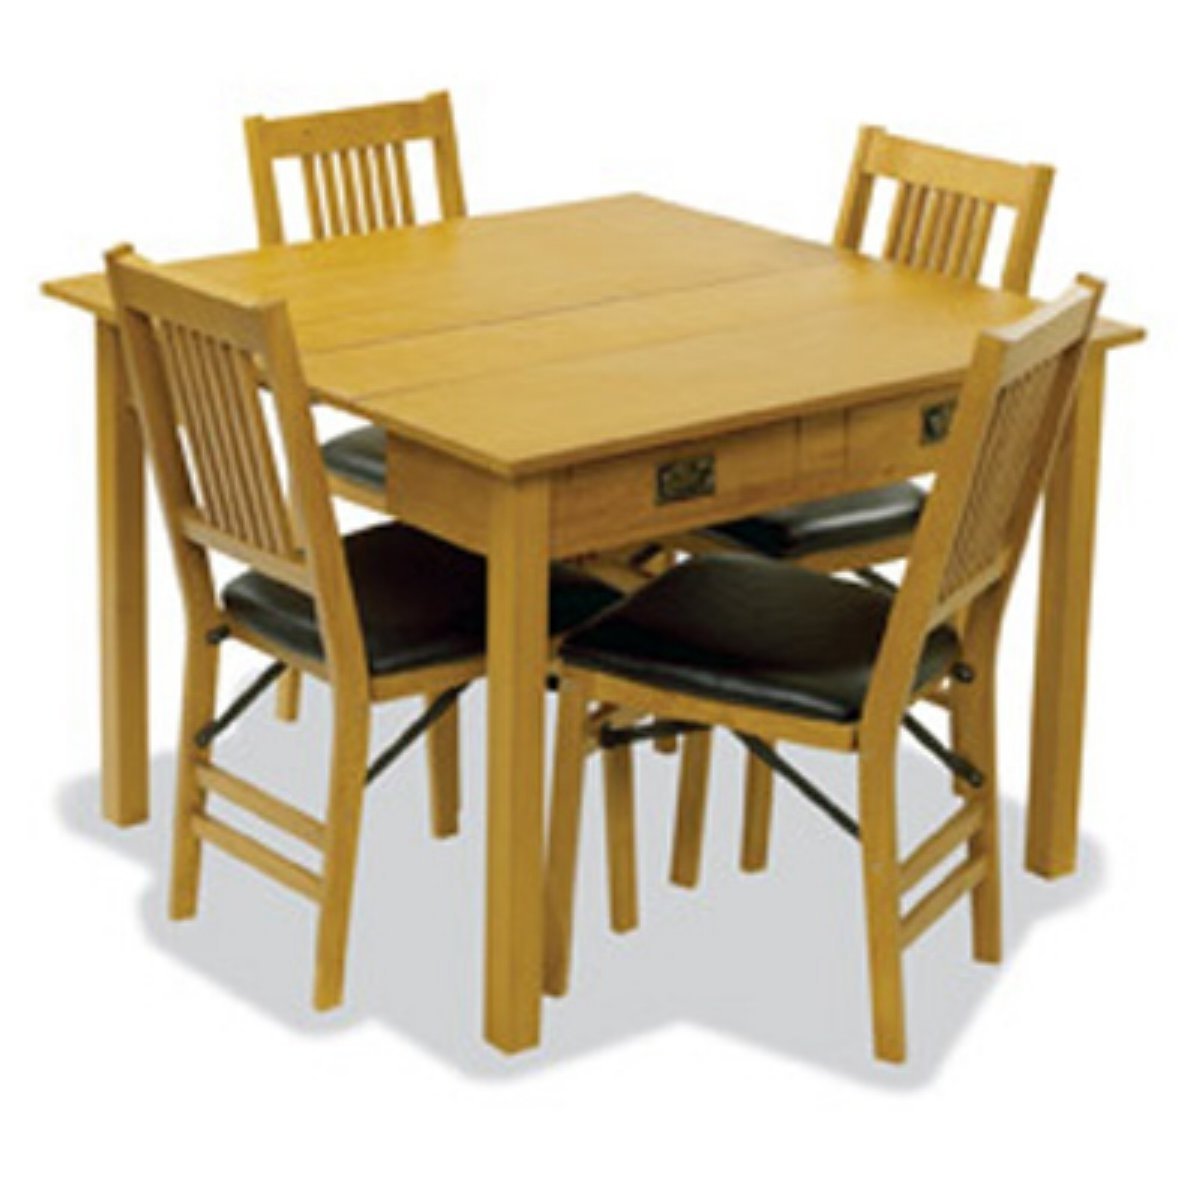 Black Folding Dining Tables And Chairs Intended For Most Popular Cute Folding Dining Table Come With Square Shape Wooden Folding (Gallery 17 of 25)